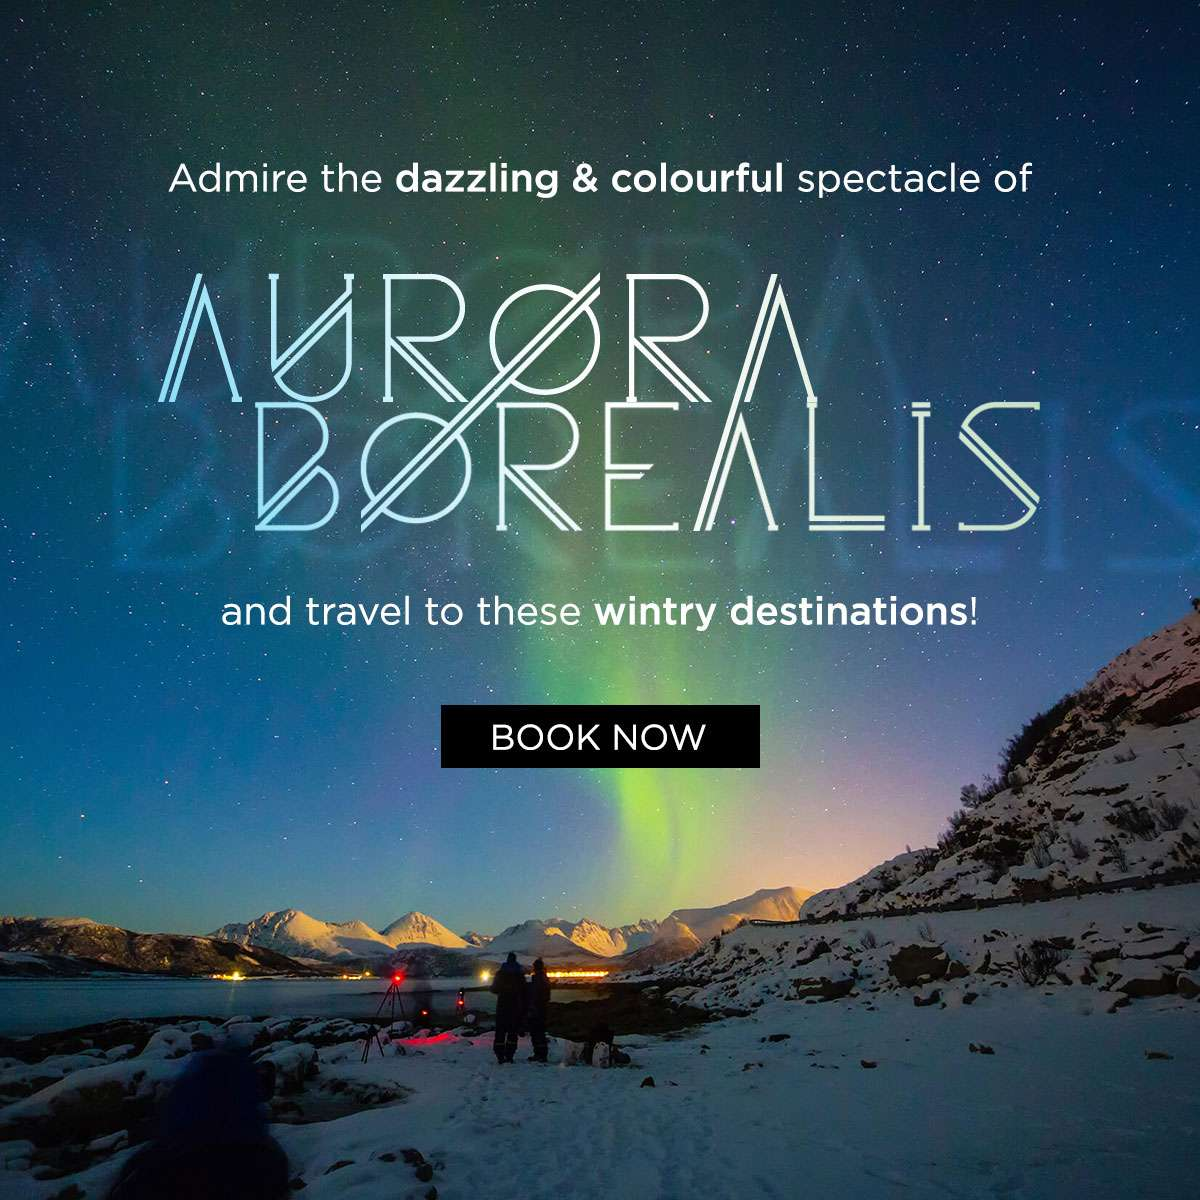 Admire the dazzling and colourful spectacle of Aurora Borealis and travel to these wintry destinations!